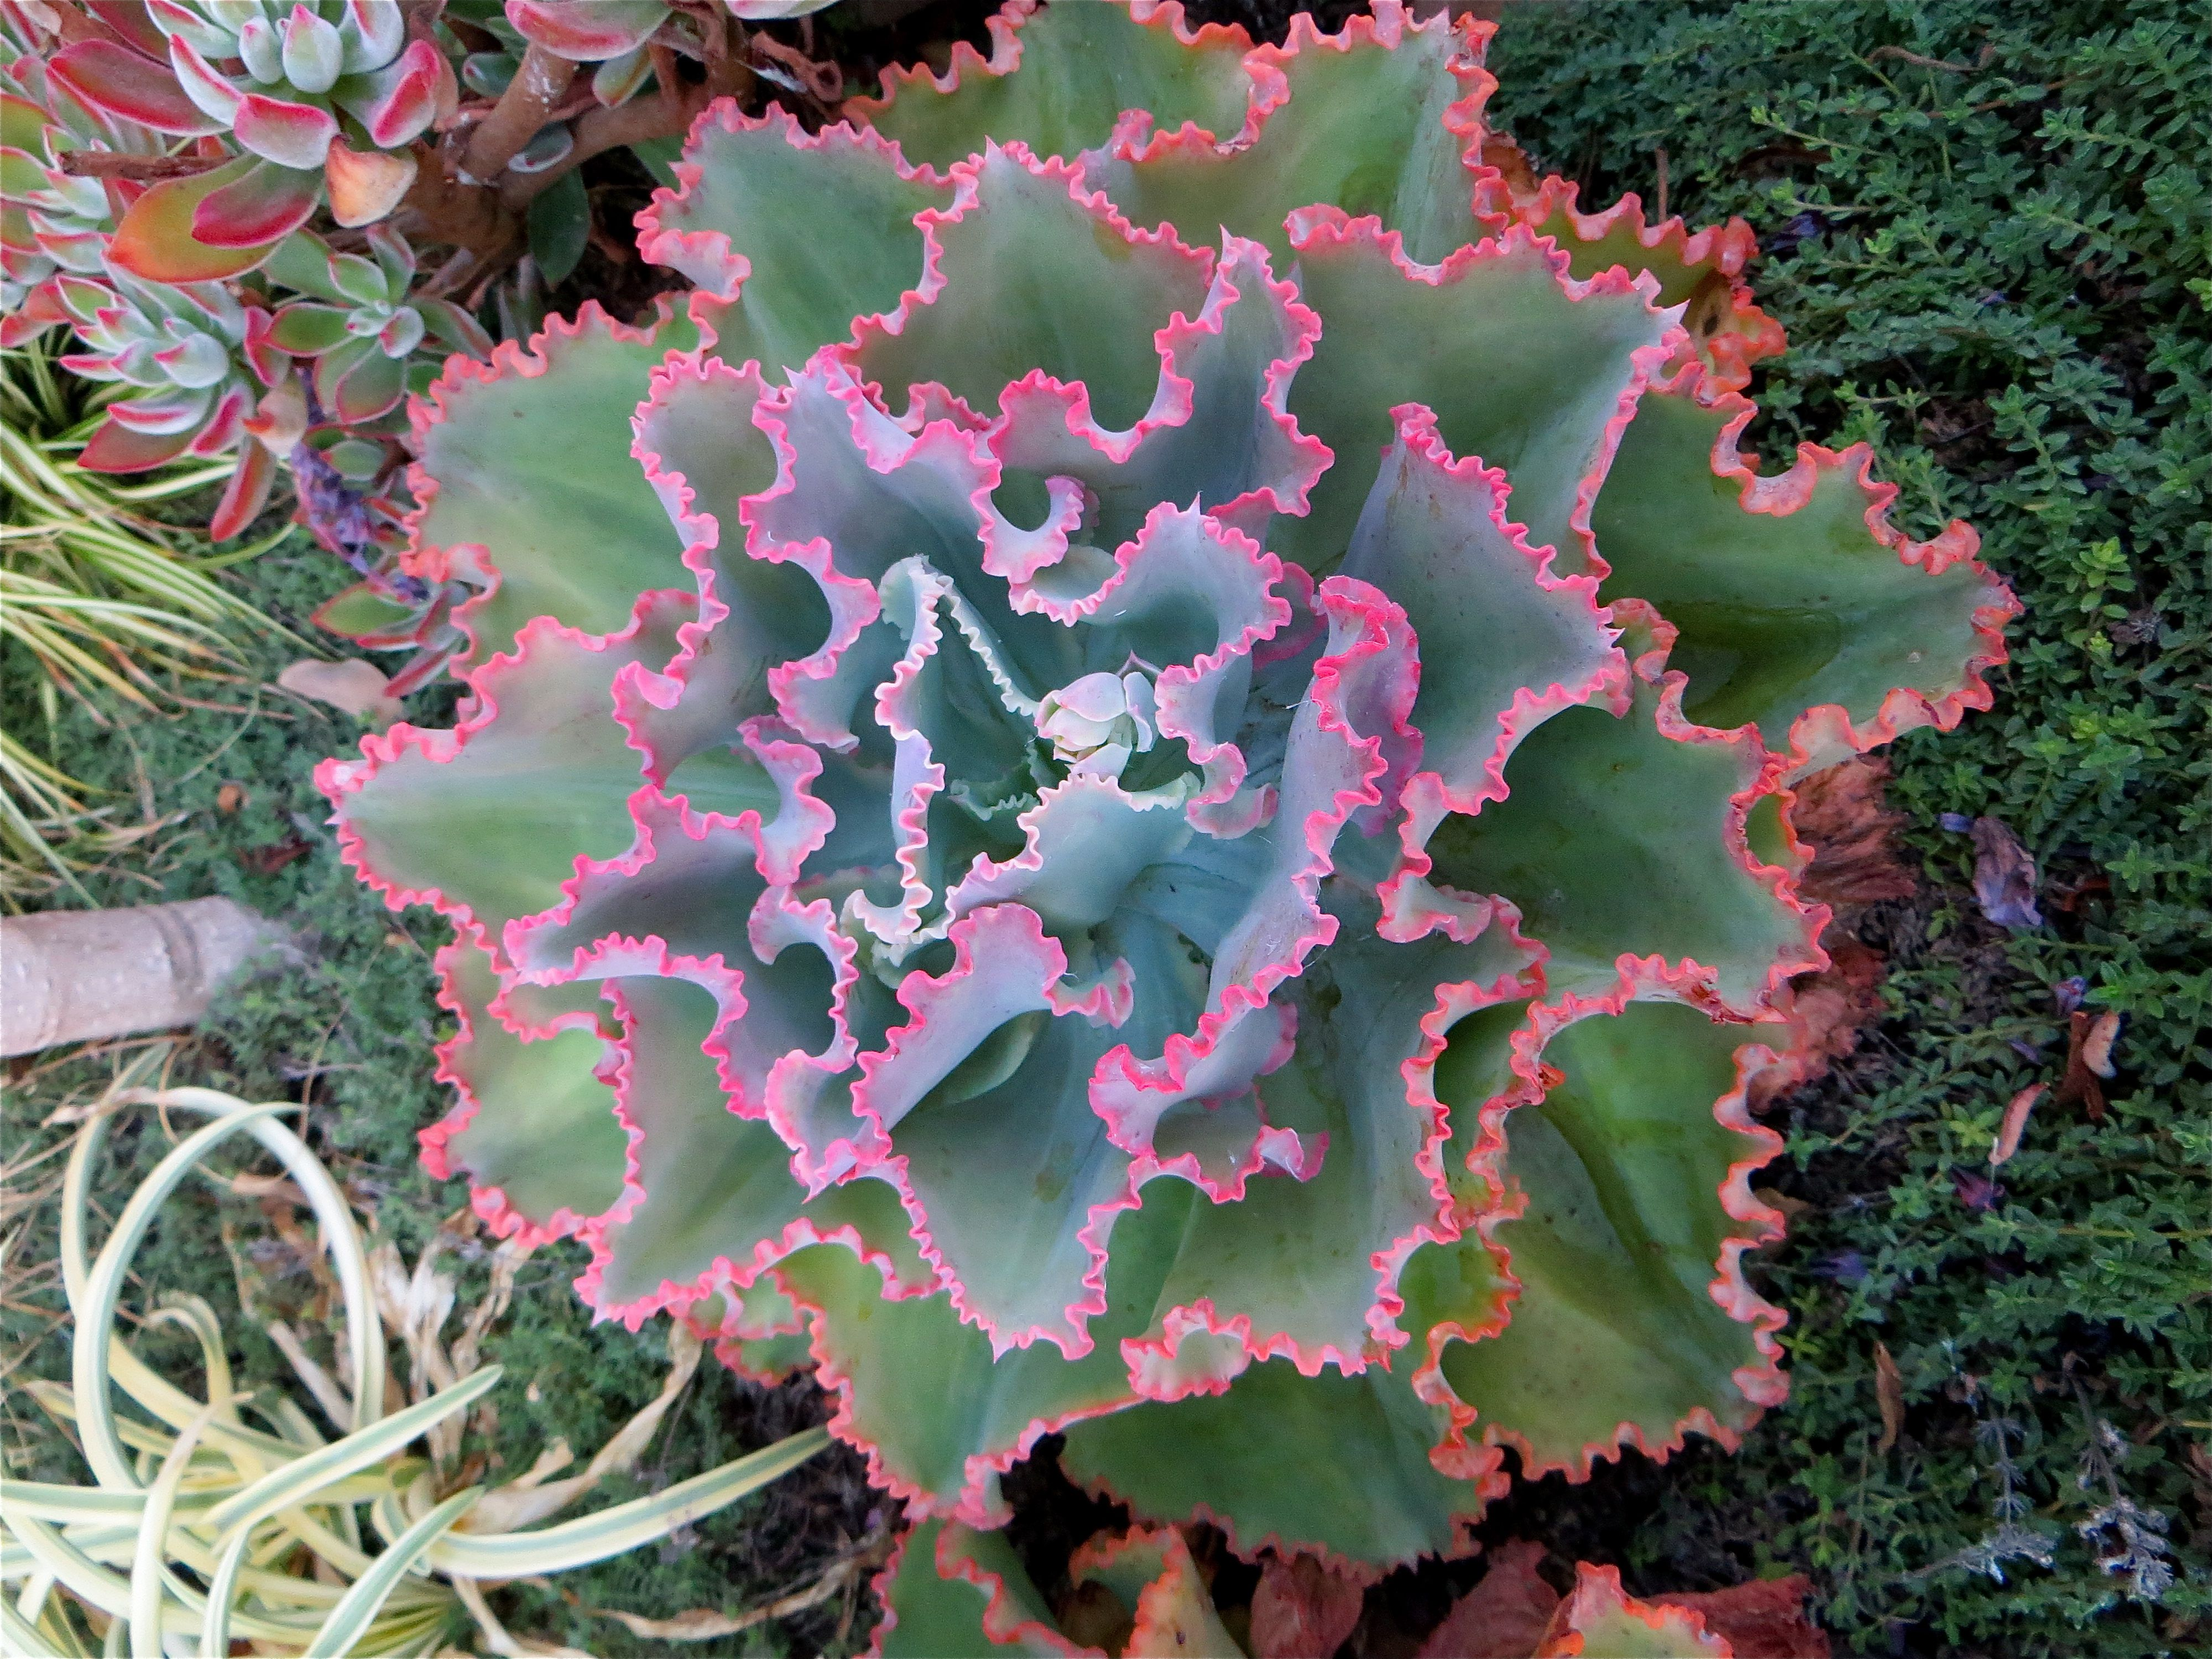 Small Succulent Plants For Sale Echeveria Quotblue Crinkles Quot Hens And Chicks Succulents This